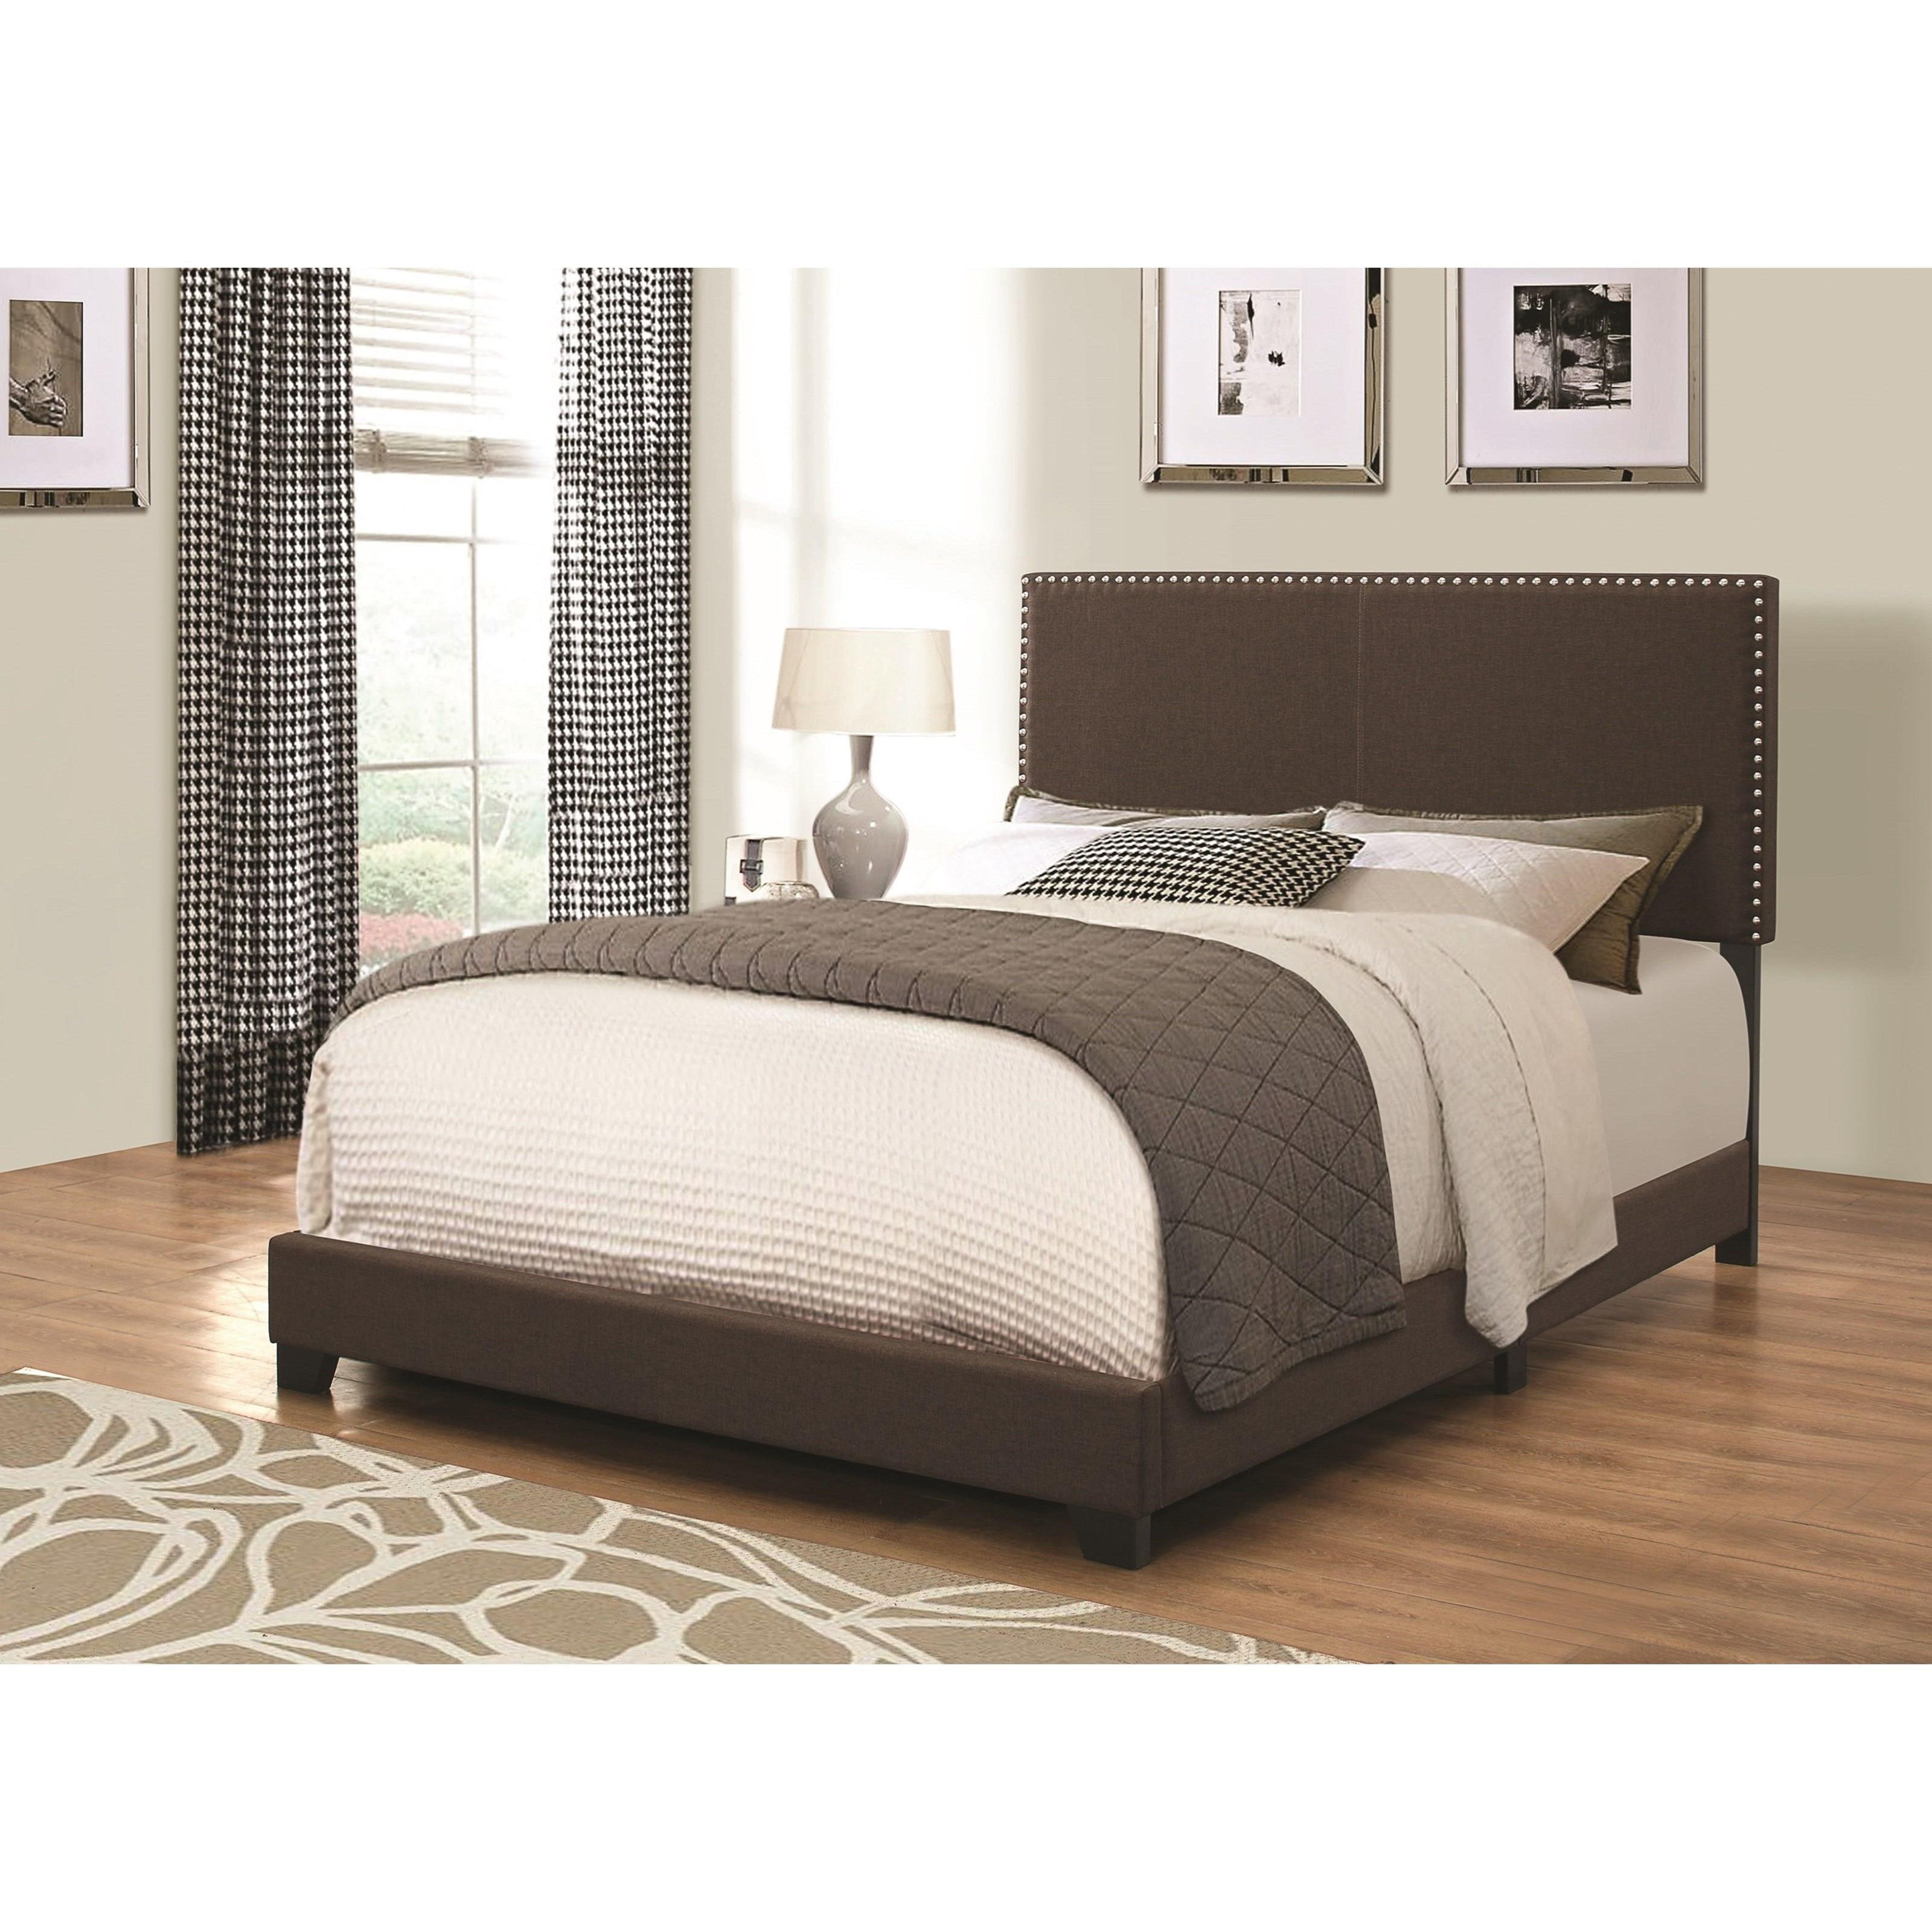 Coaster Upholstered Beds 350081t Upholstered Twin Bed With